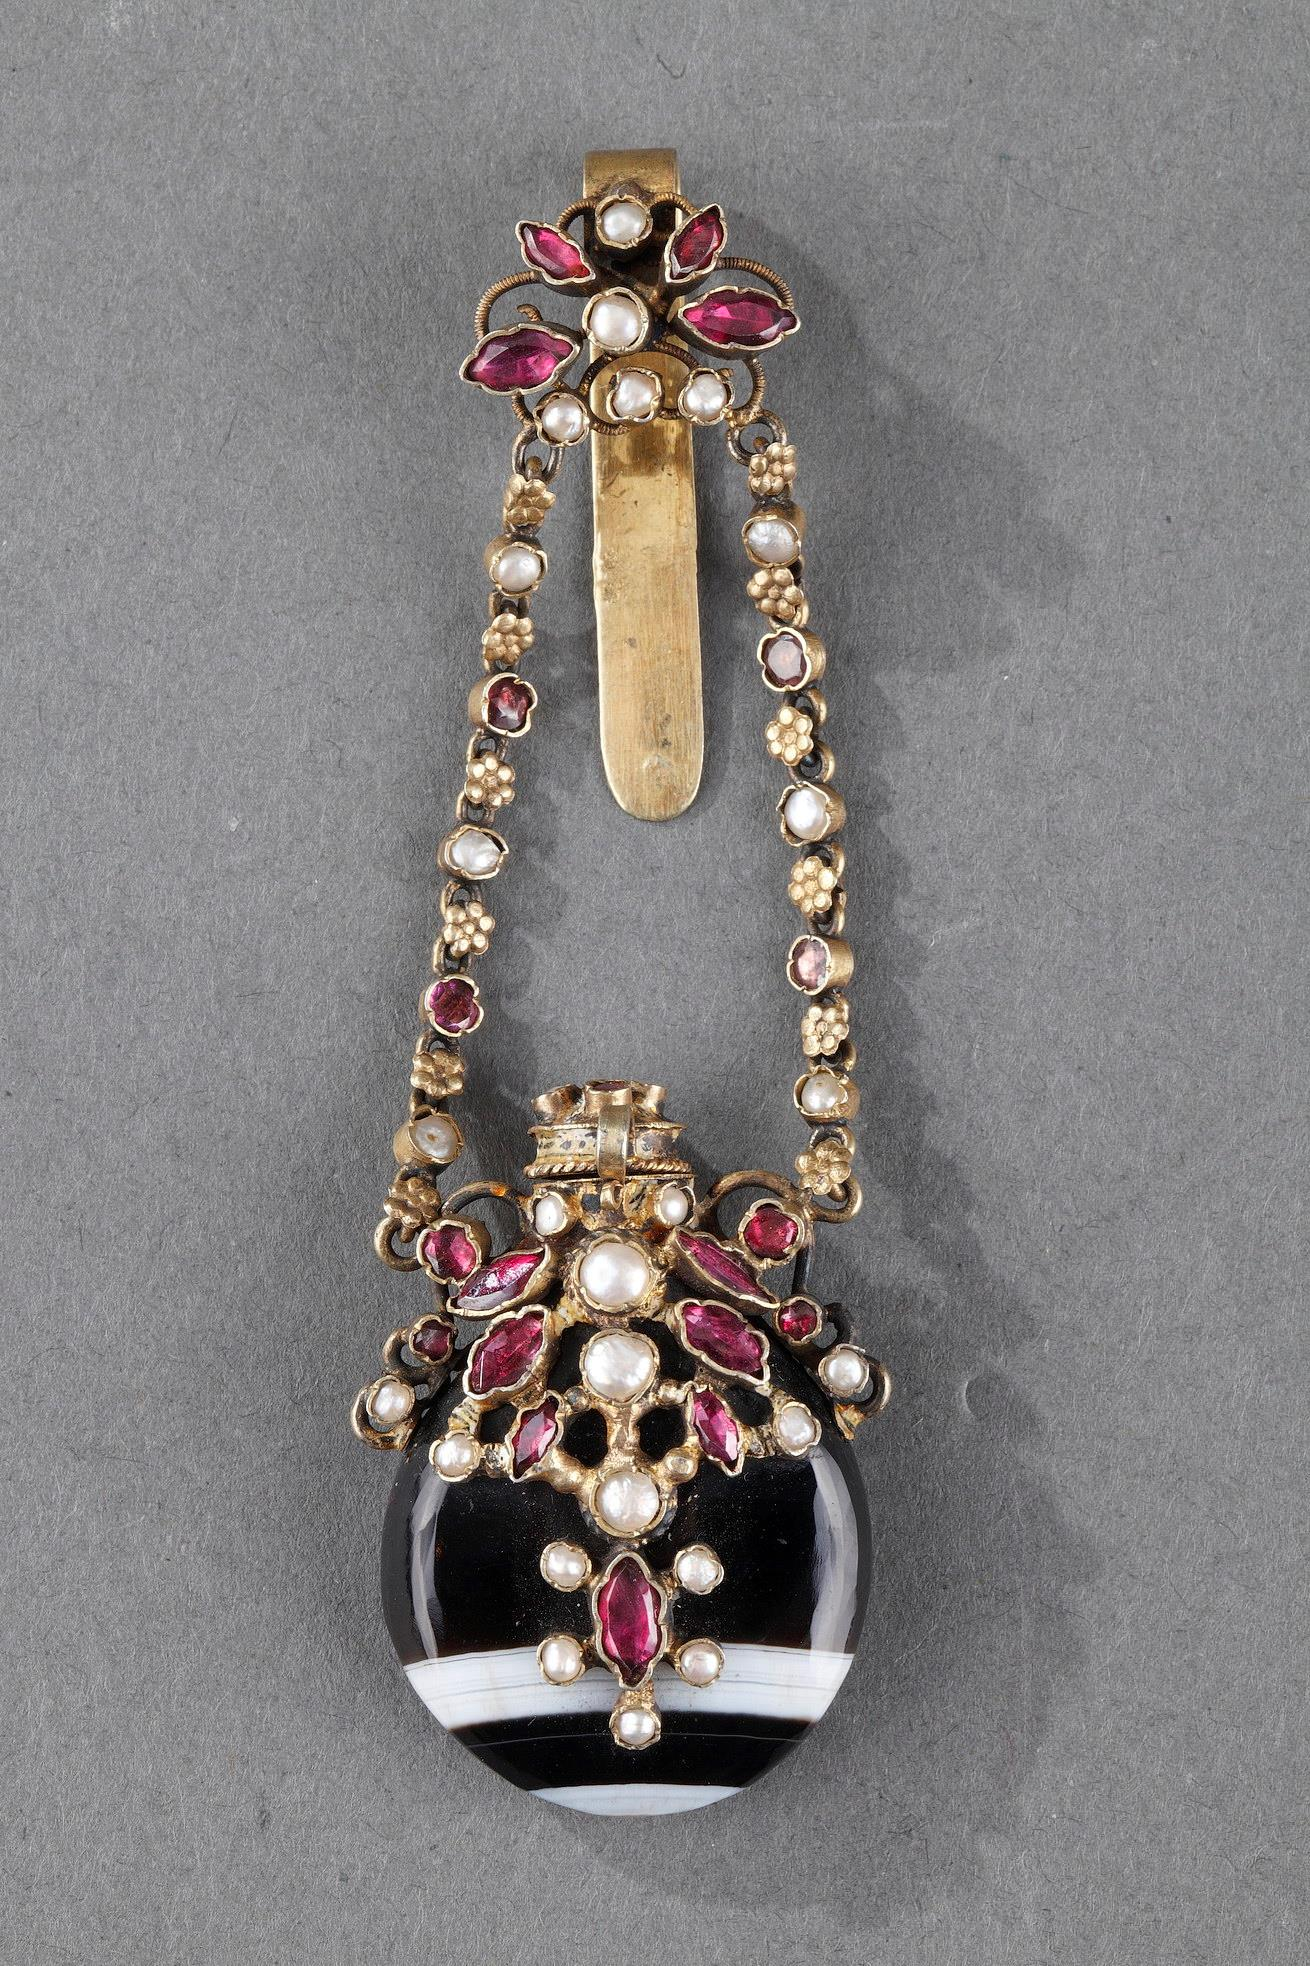 SILVER CHATELAINE WITH AGATE AND GEMSTONES.<br/> LATE 19TH CENTURY WORK.